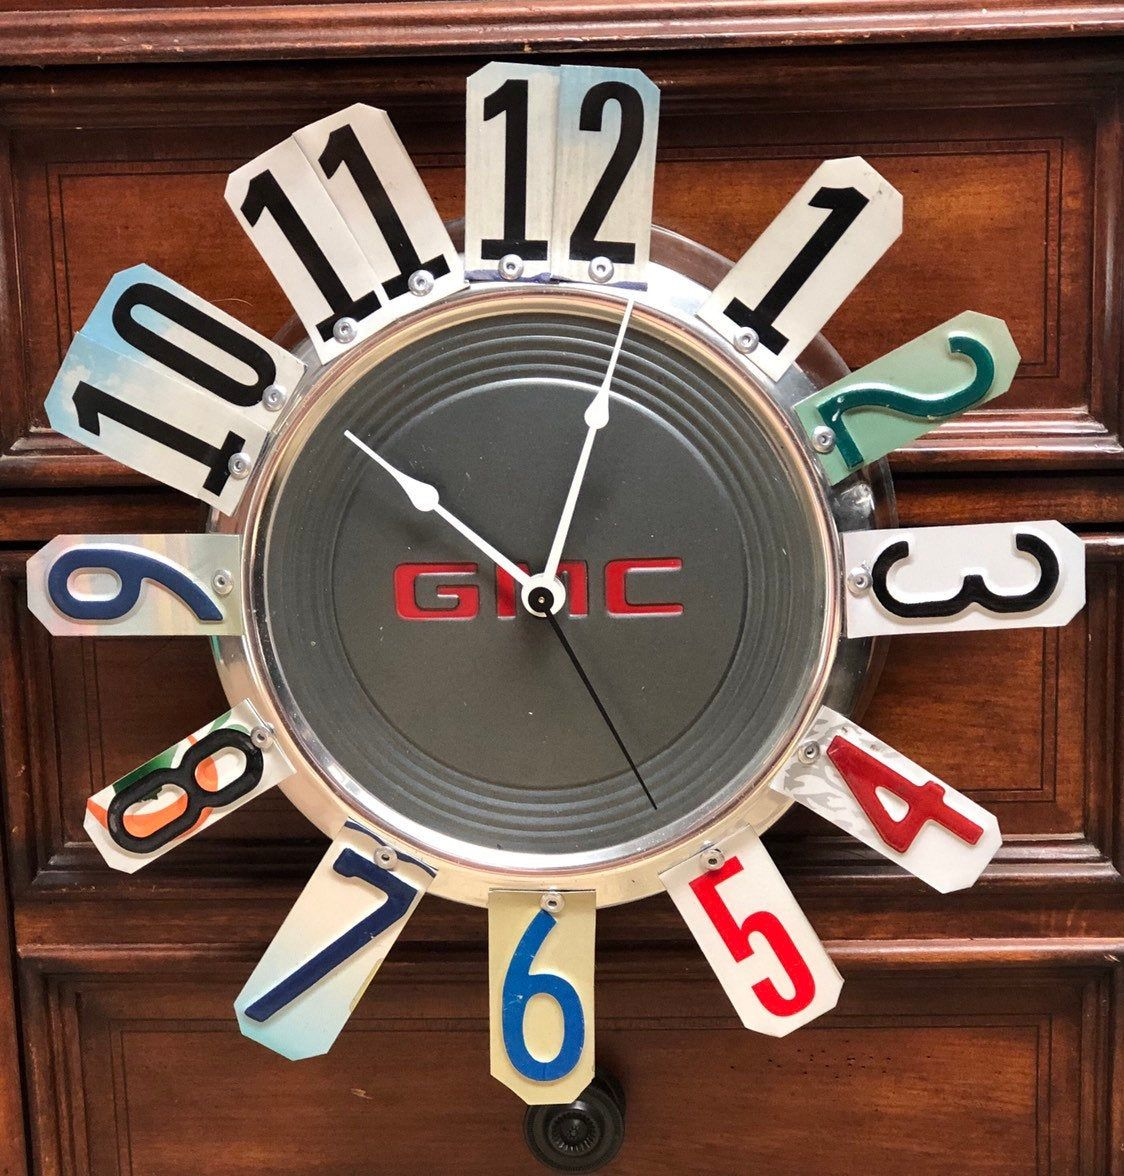 GMC Hubcap Clock, GMC Truck. License Plate Garage Clock, Man Cave,Garage,Man,Boy,Dad,Grandpa,GMC Fan,Car Themed Room,Classic Cars #garagemancaves